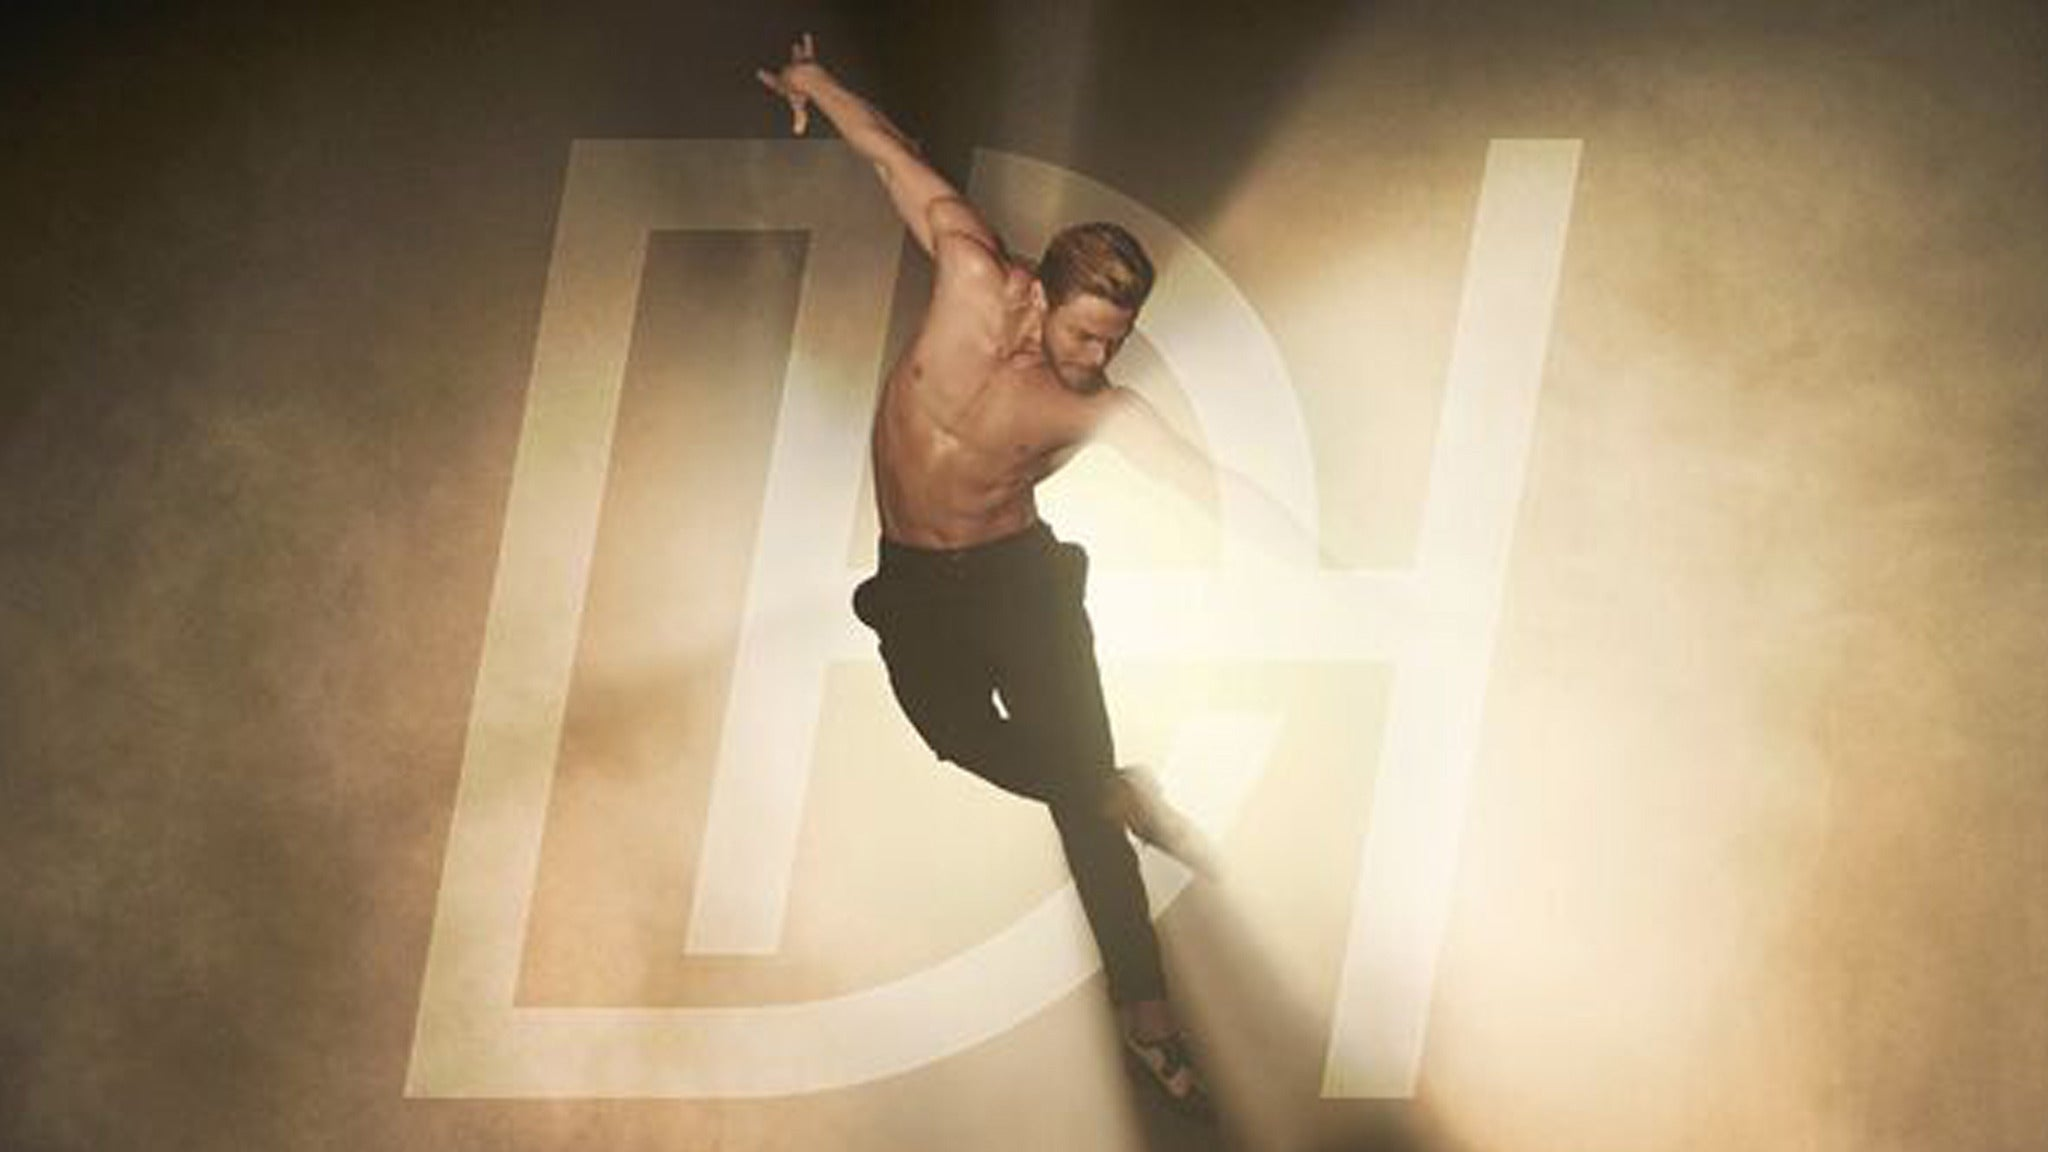 Derek Hough: Live! The Tour at Mohegan Sun Arena